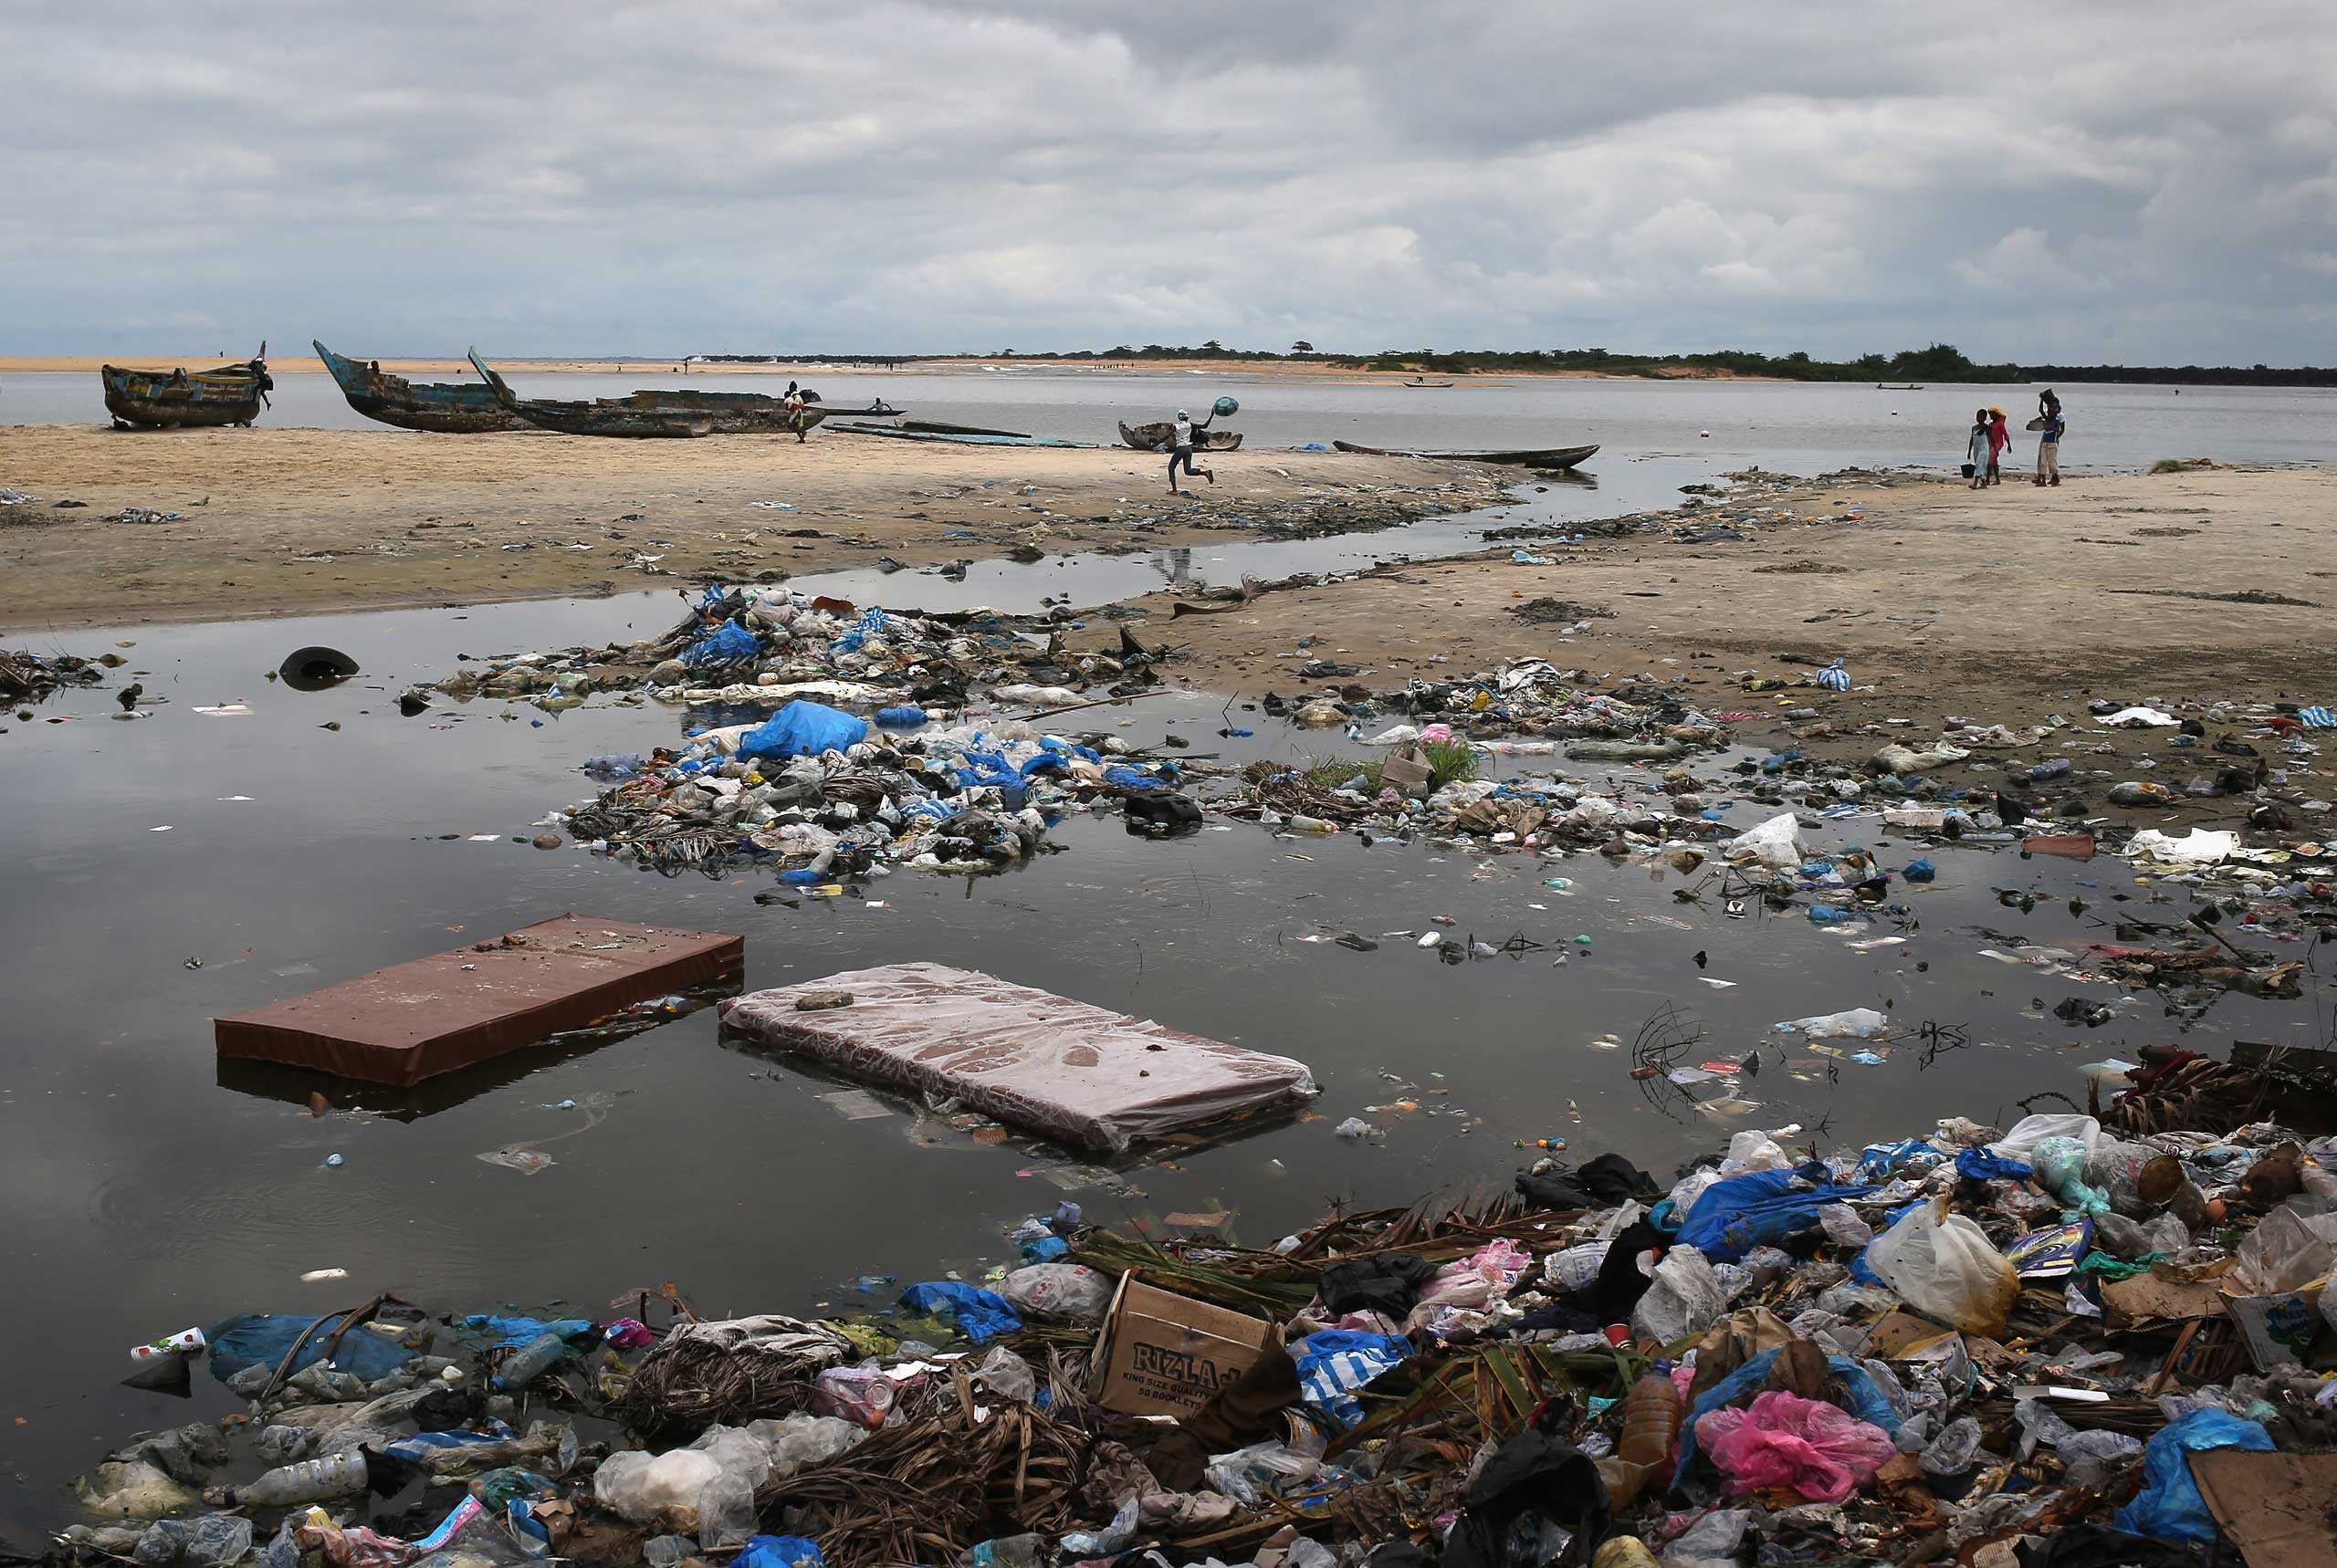 Mattresses that were looted from an isolation center for Ebola patients, local residents said, float in a seaside dump in the West Point slum in Monrovia on Aug. 19, 2014.